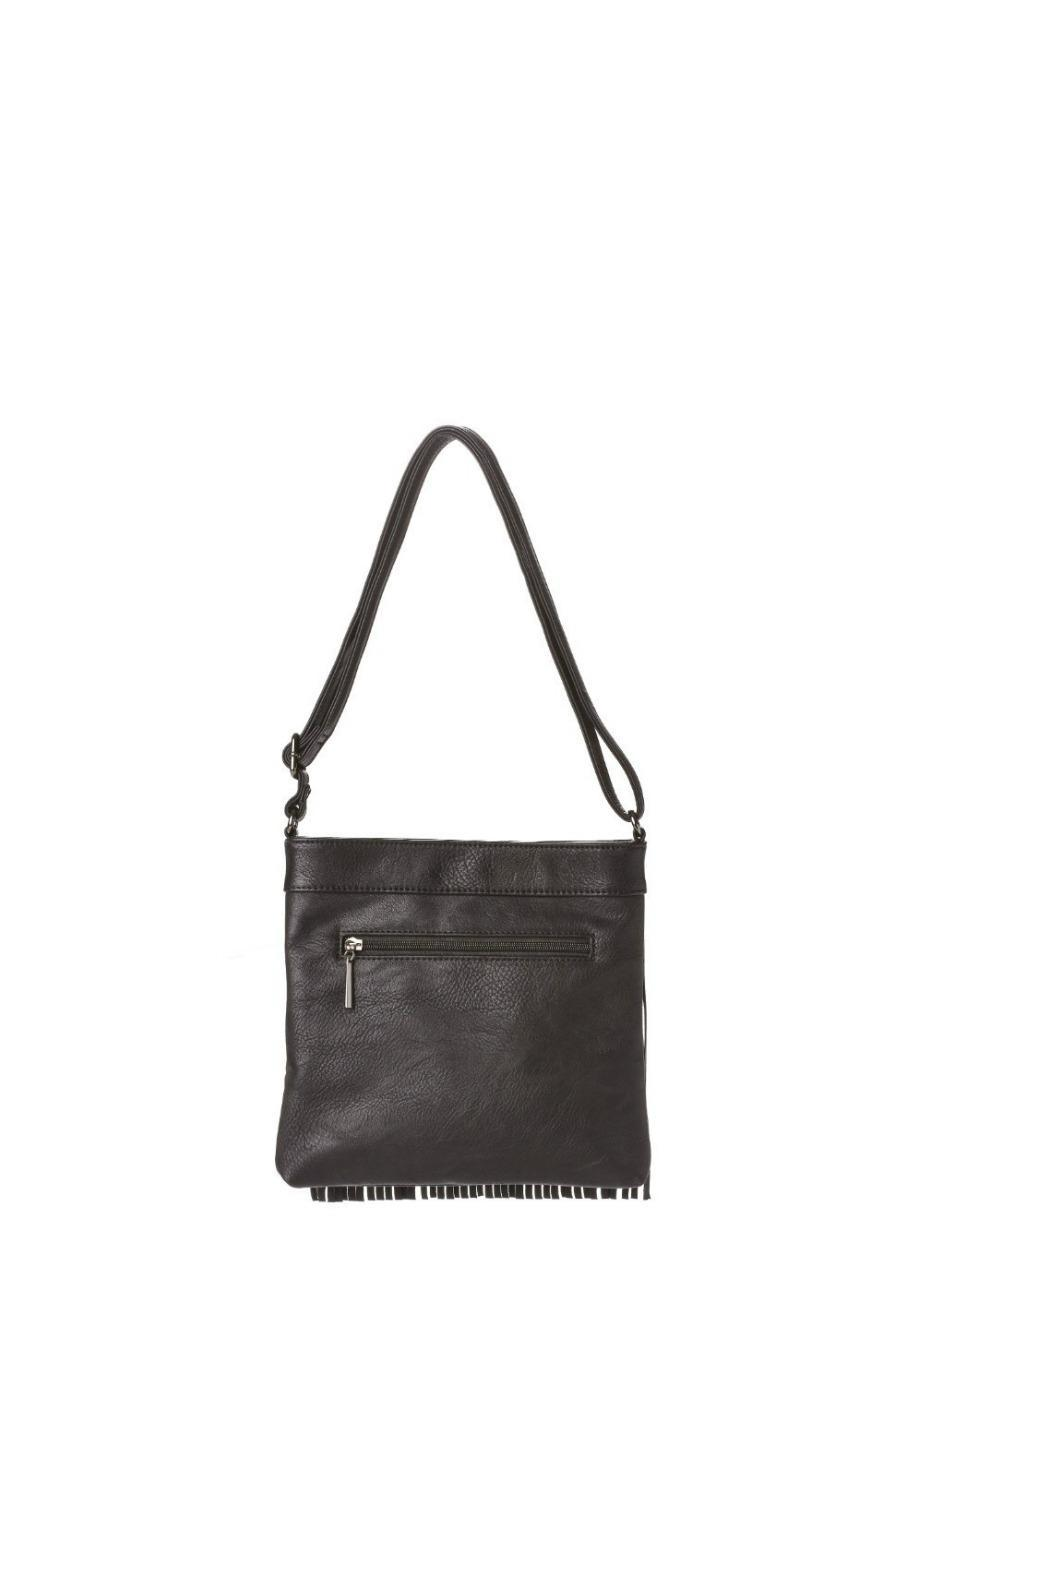 422c7441a07d Jeane   Jax Fringe Crossbody Bag from Canada by Real Spirit Apparel ...